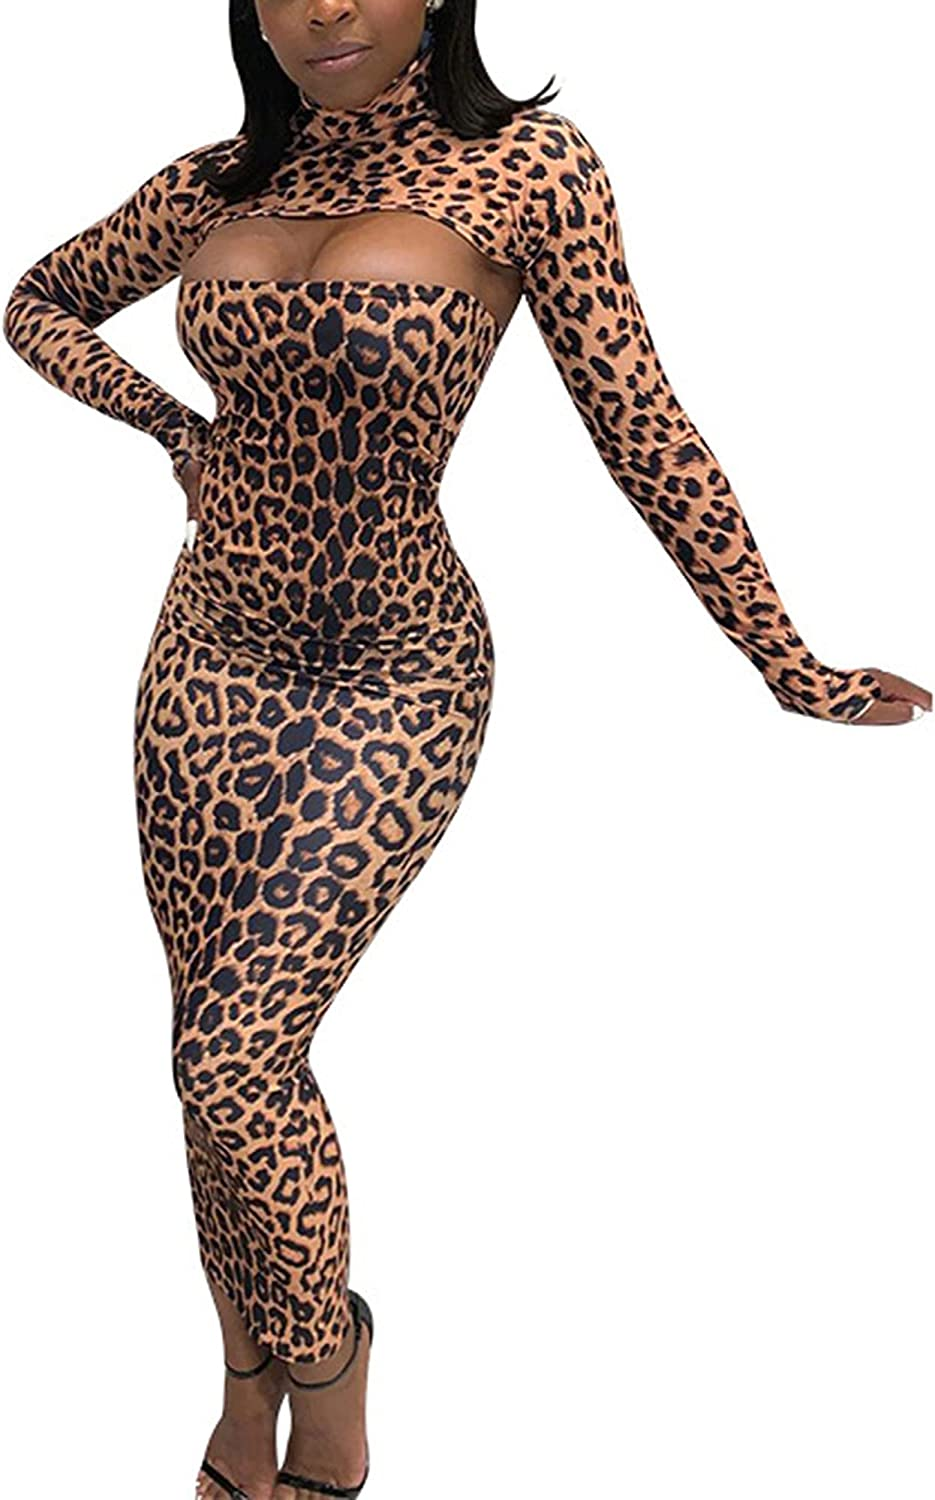 Women Fashion Leopard 2 Pieces Outfits,Skinny Maxi Dress+Long Sleeve Smock Tube Tops Set